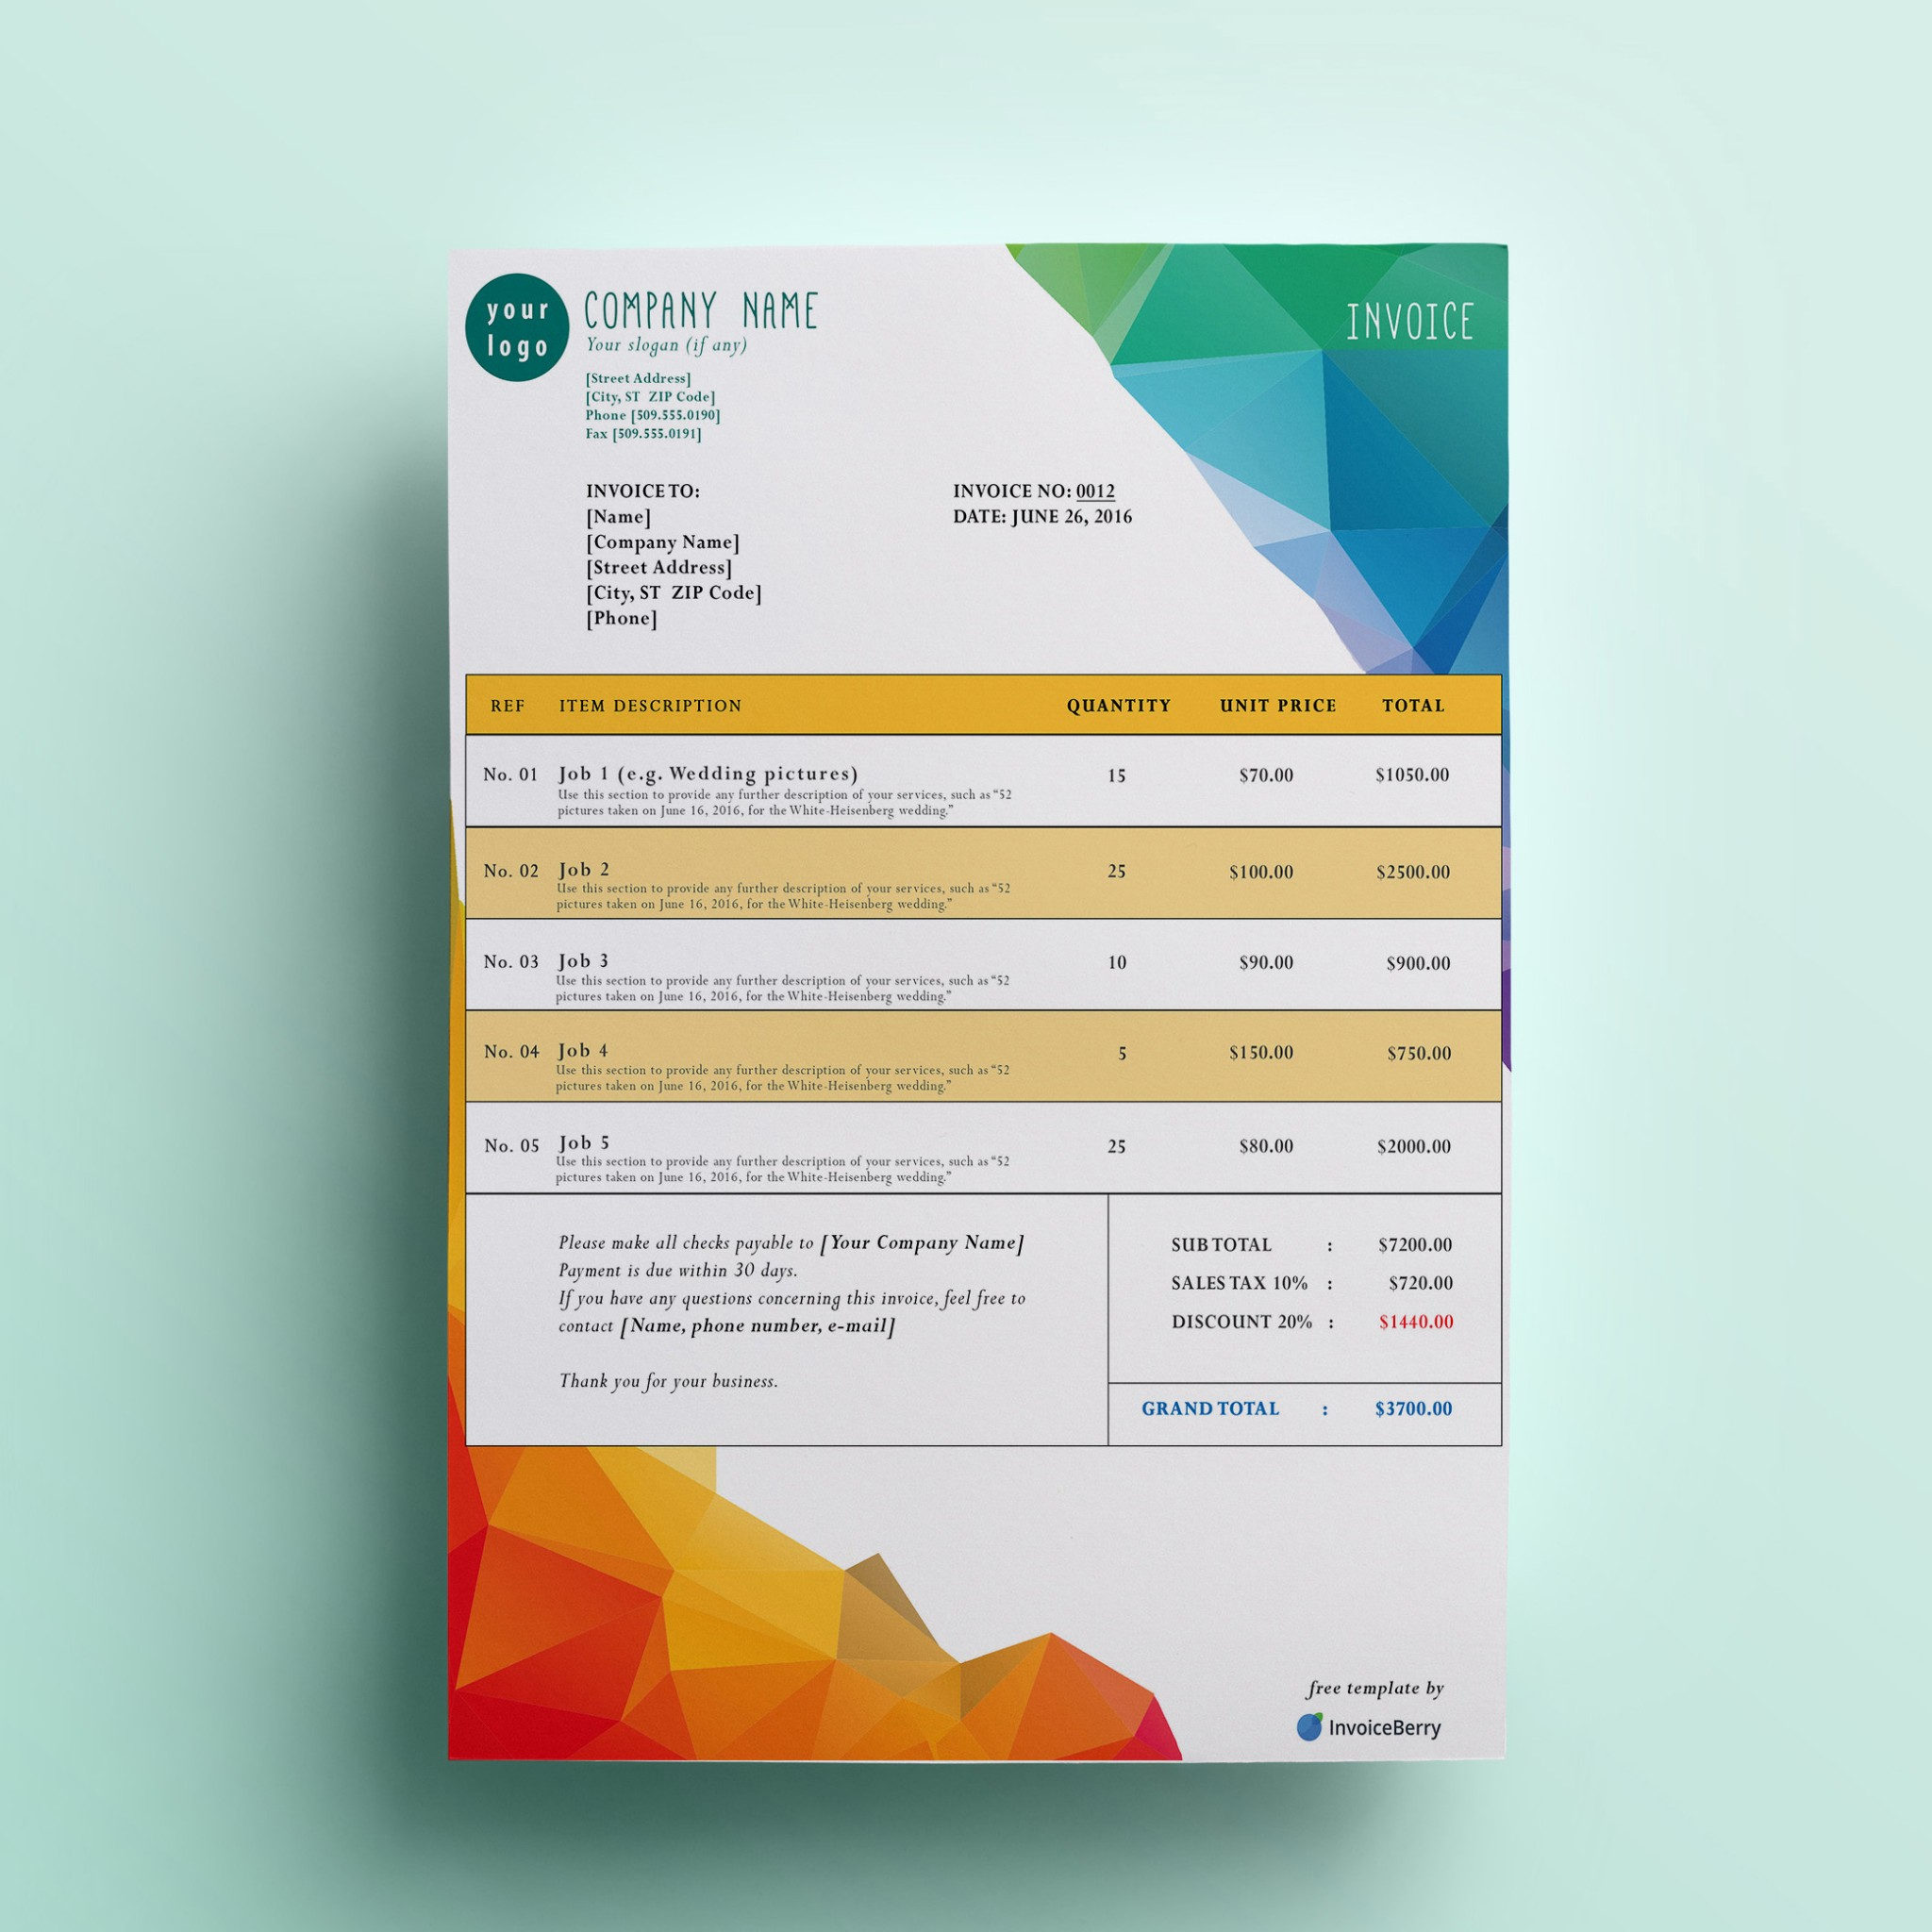 Free Invoice Templates By InvoiceBerry The Grid System - Invoice design template